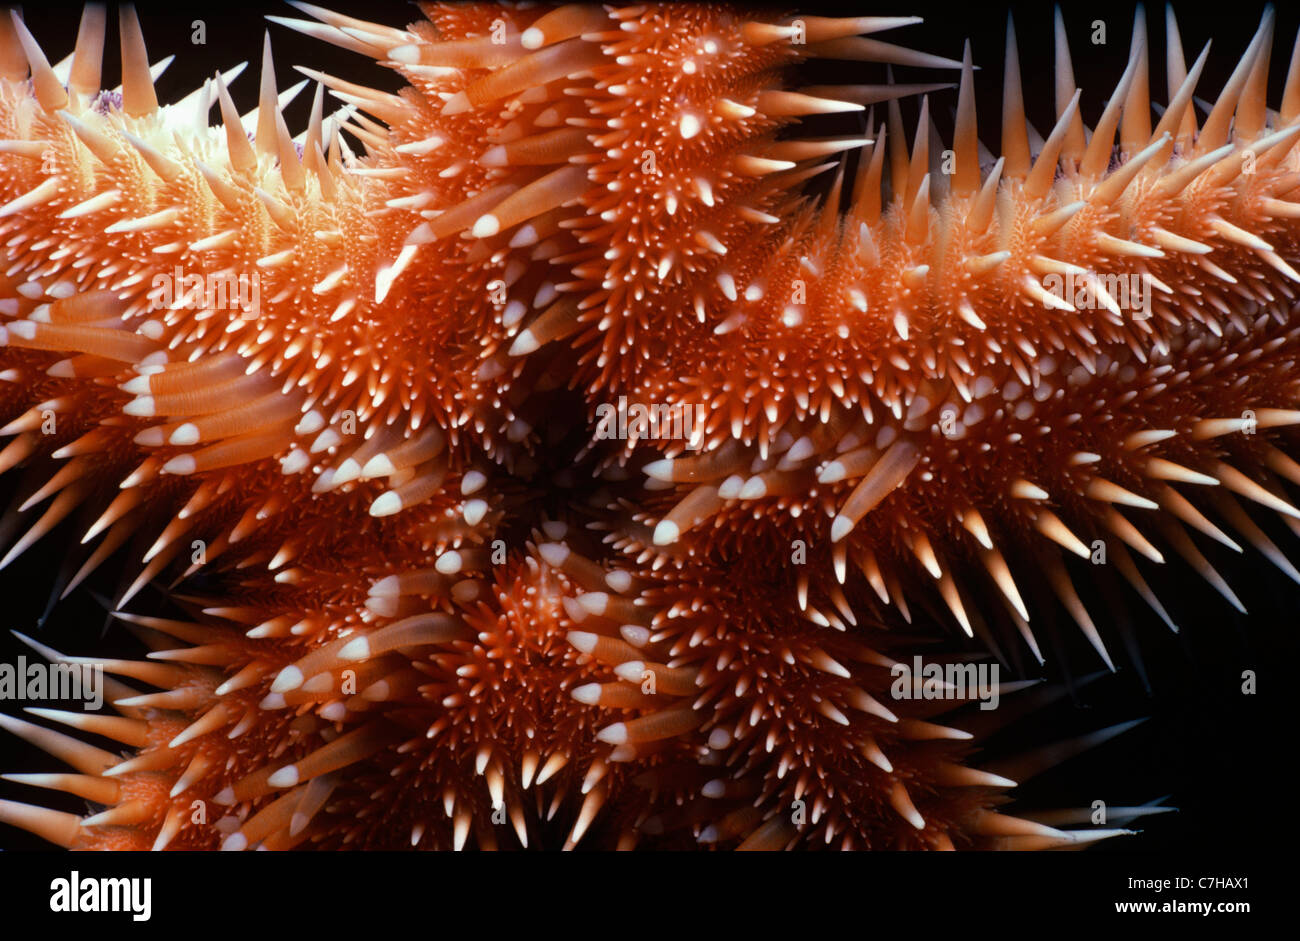 Underside of Comb Star (Astropecten polycanthus) showing its mouth. Egypt, Red Sea - Stock Image